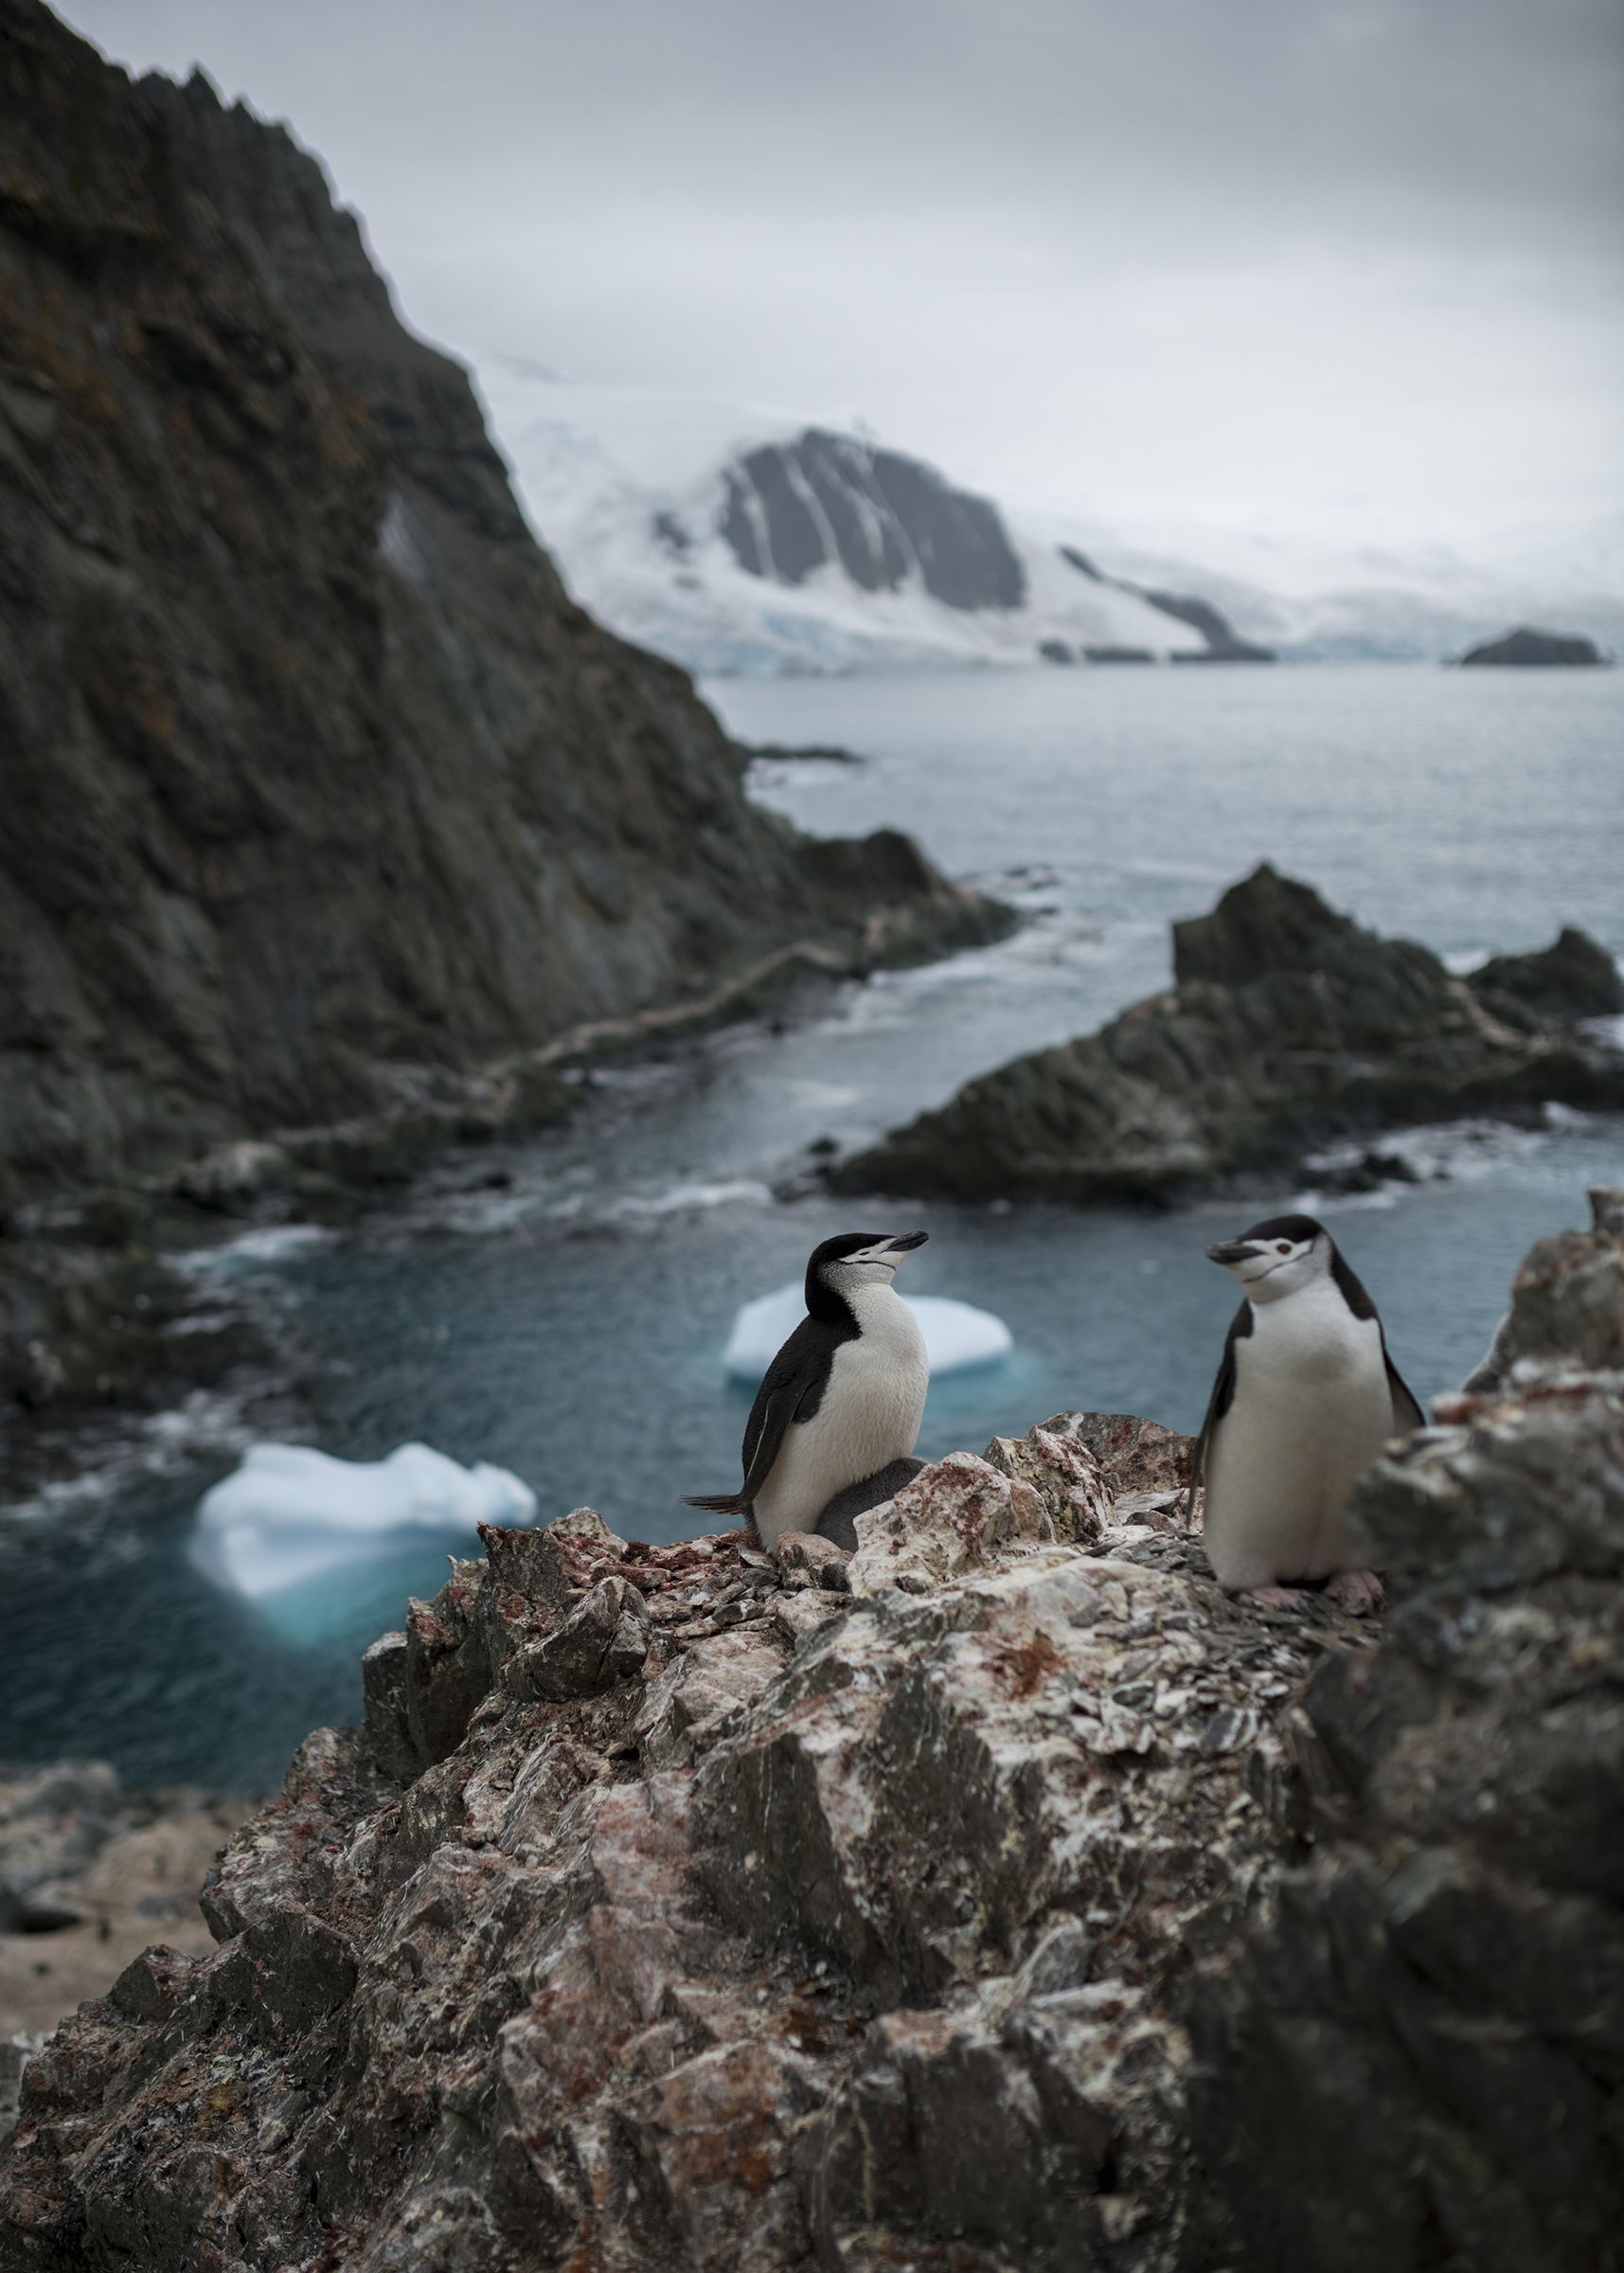 A chinstrap penguin colony on Elephant Island, Antarctica on Jan. 17, 2020.